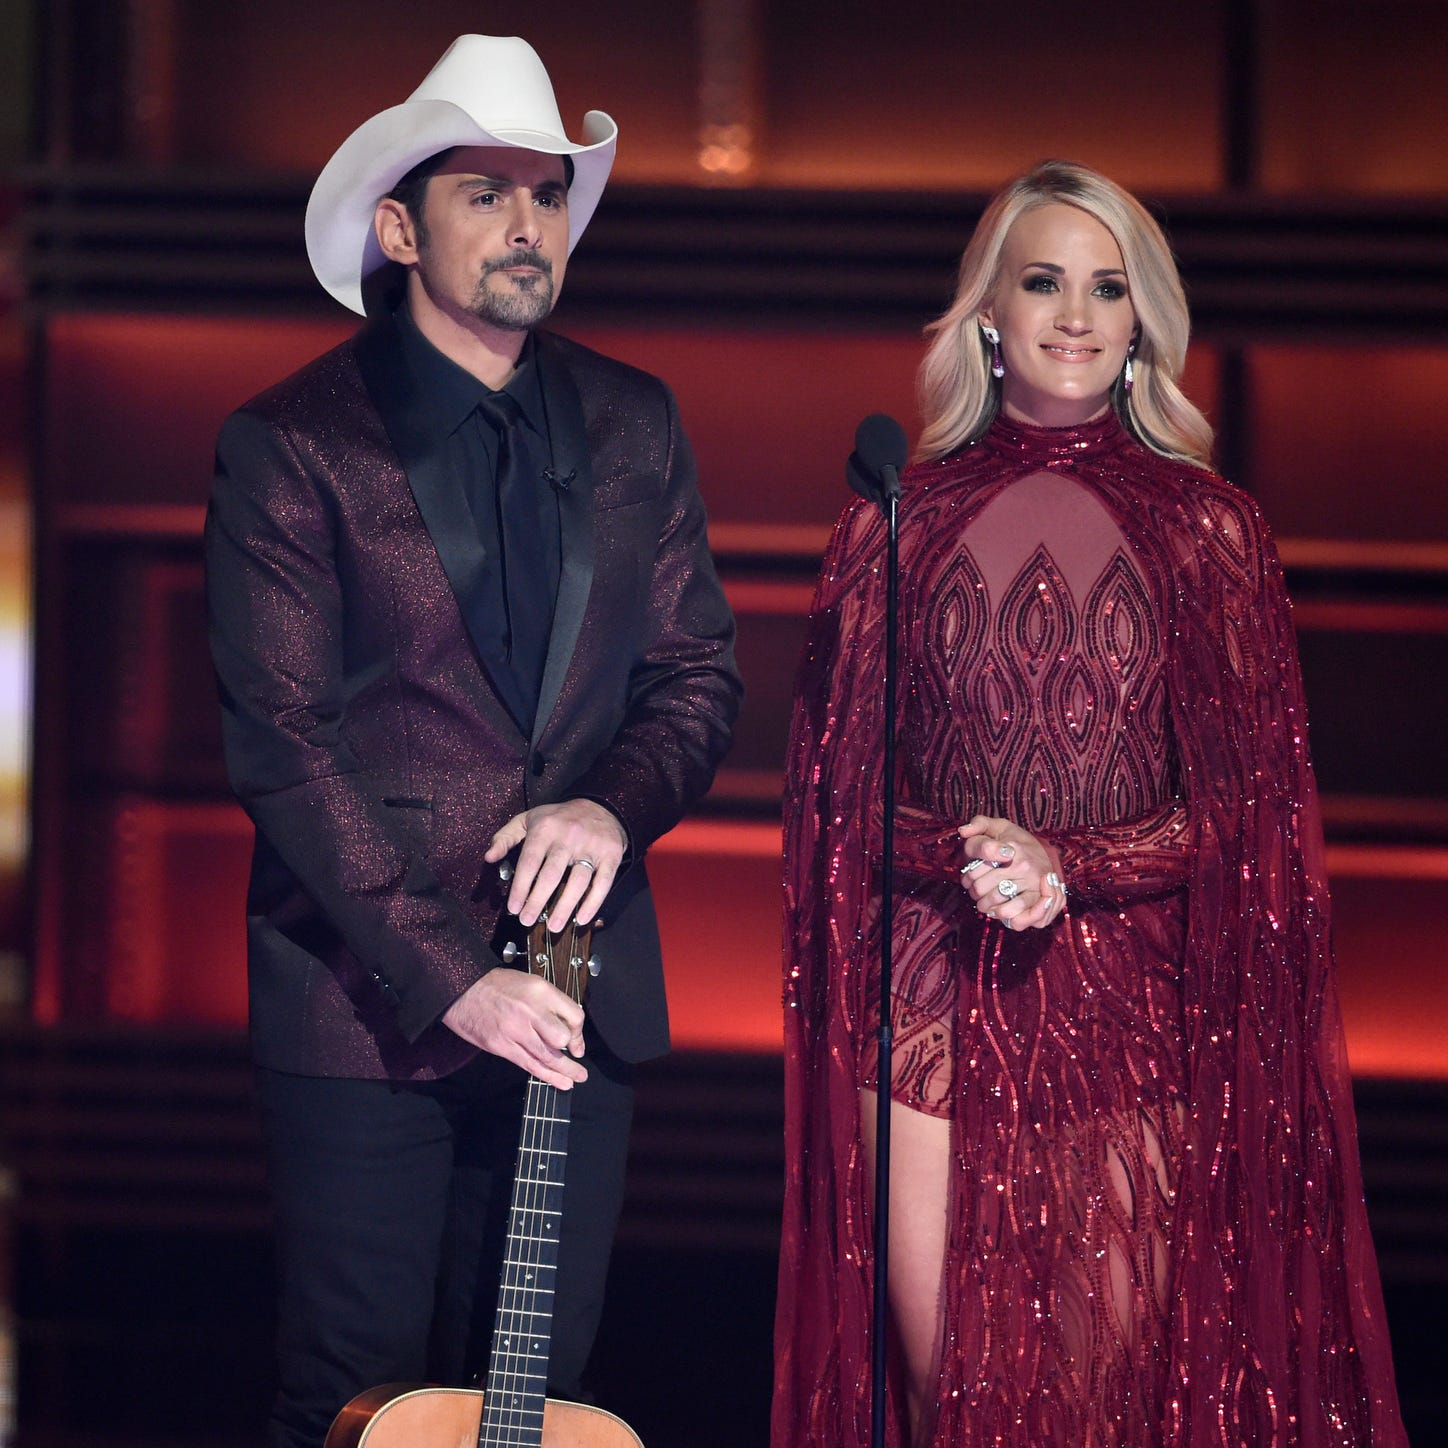 Carrie Underwood, Brad Paisley open up about hosting CMA Awards 2018